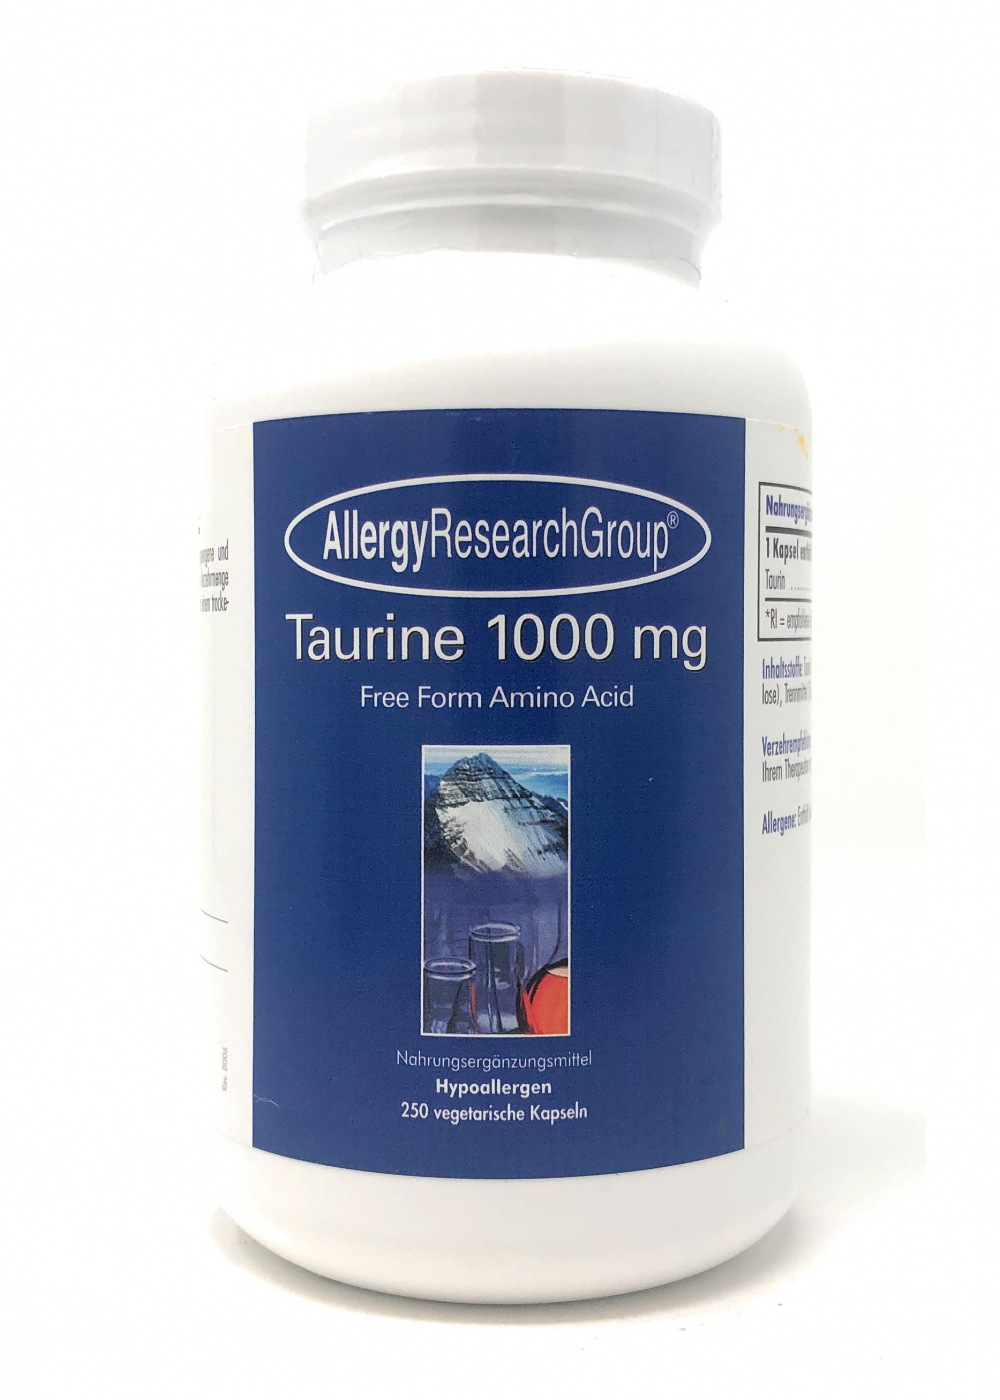 Allergy Research Group Taurine 1000mg 250 veg. Kapseln